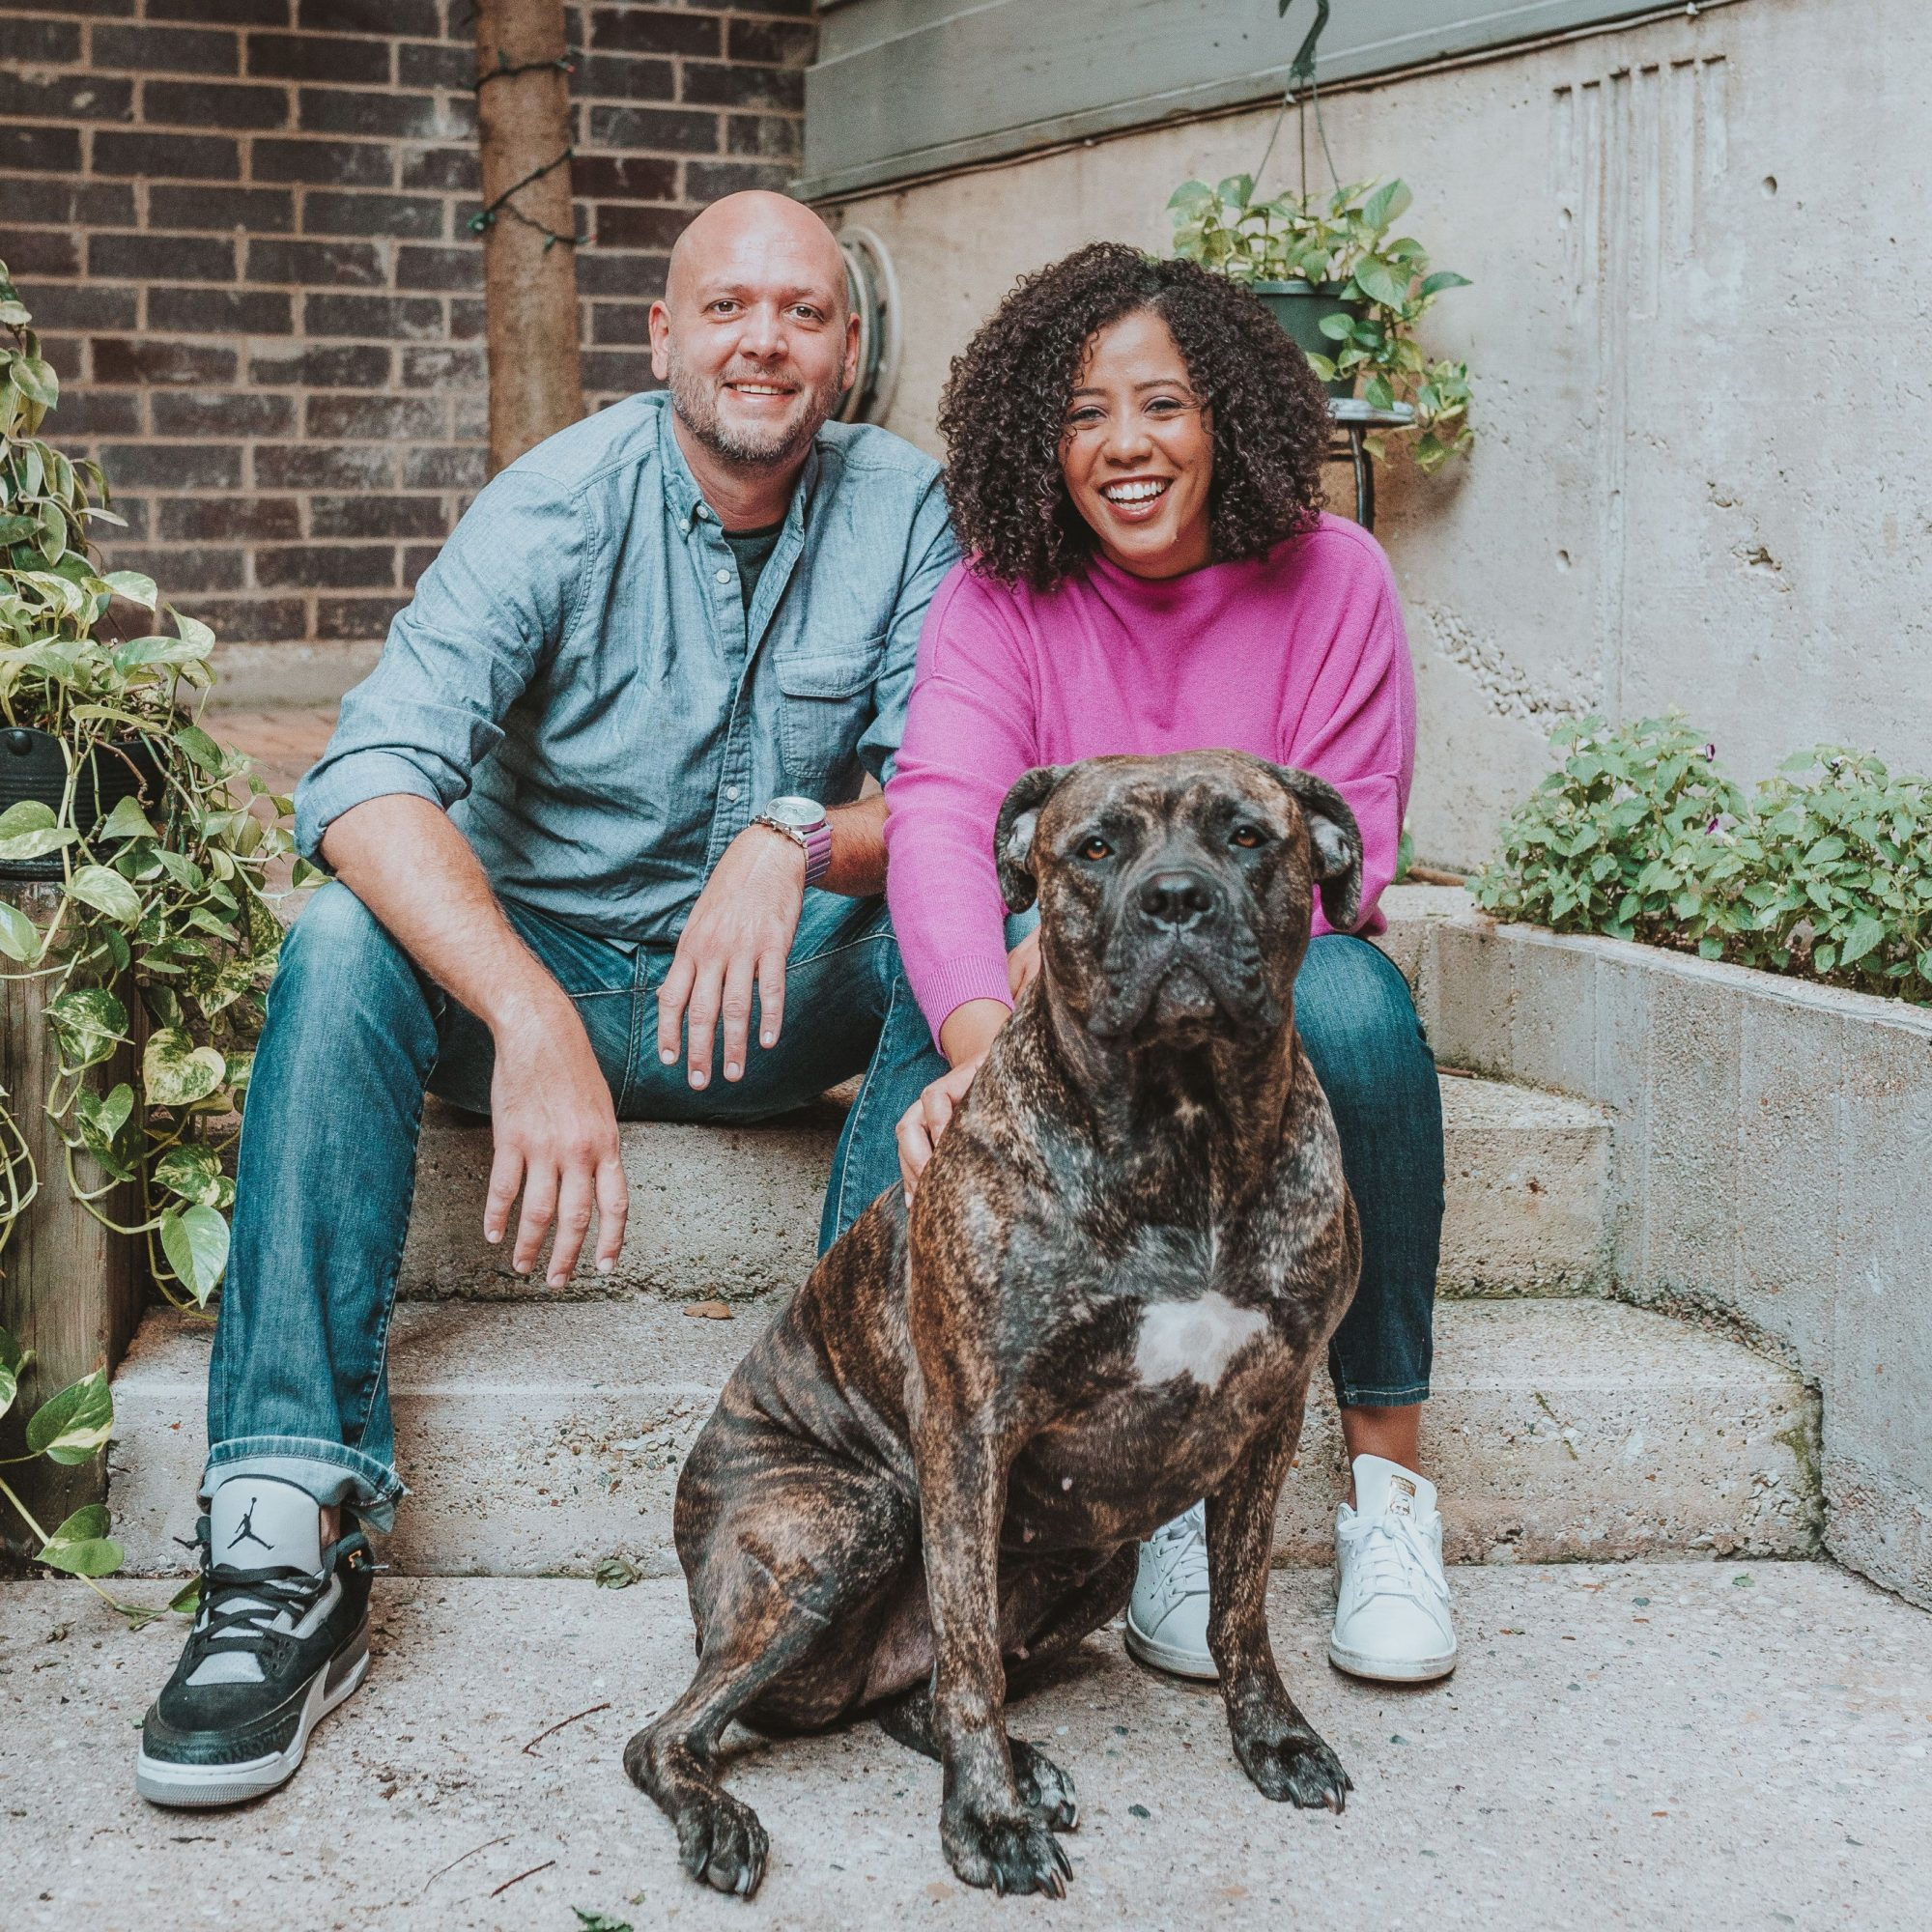 jessica lawson, her partner, and her dog